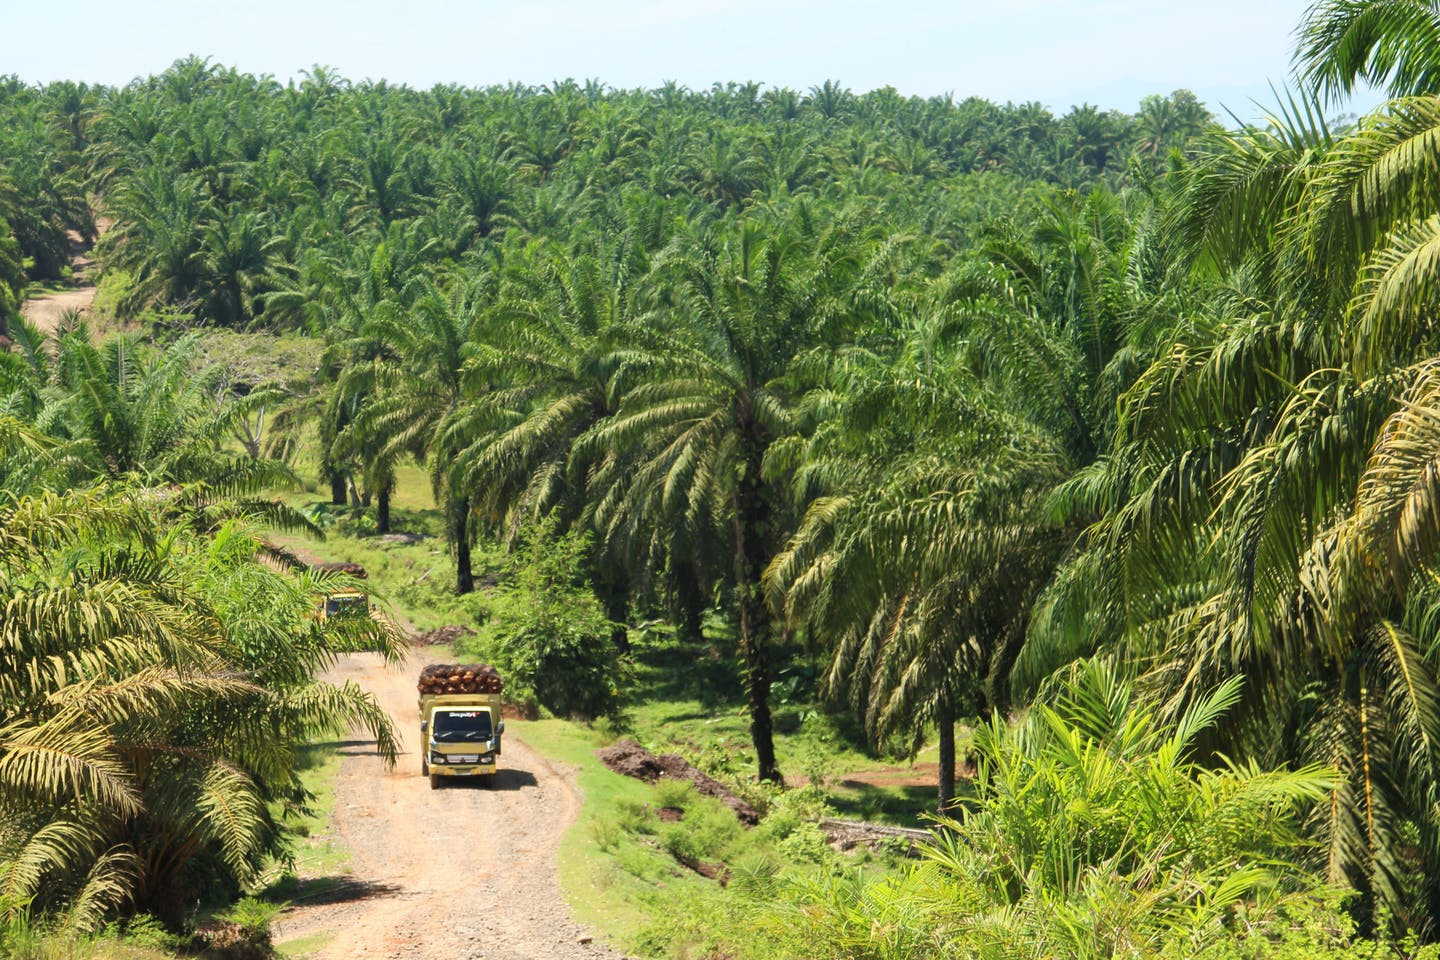 Palm oil plantation in Sumatra